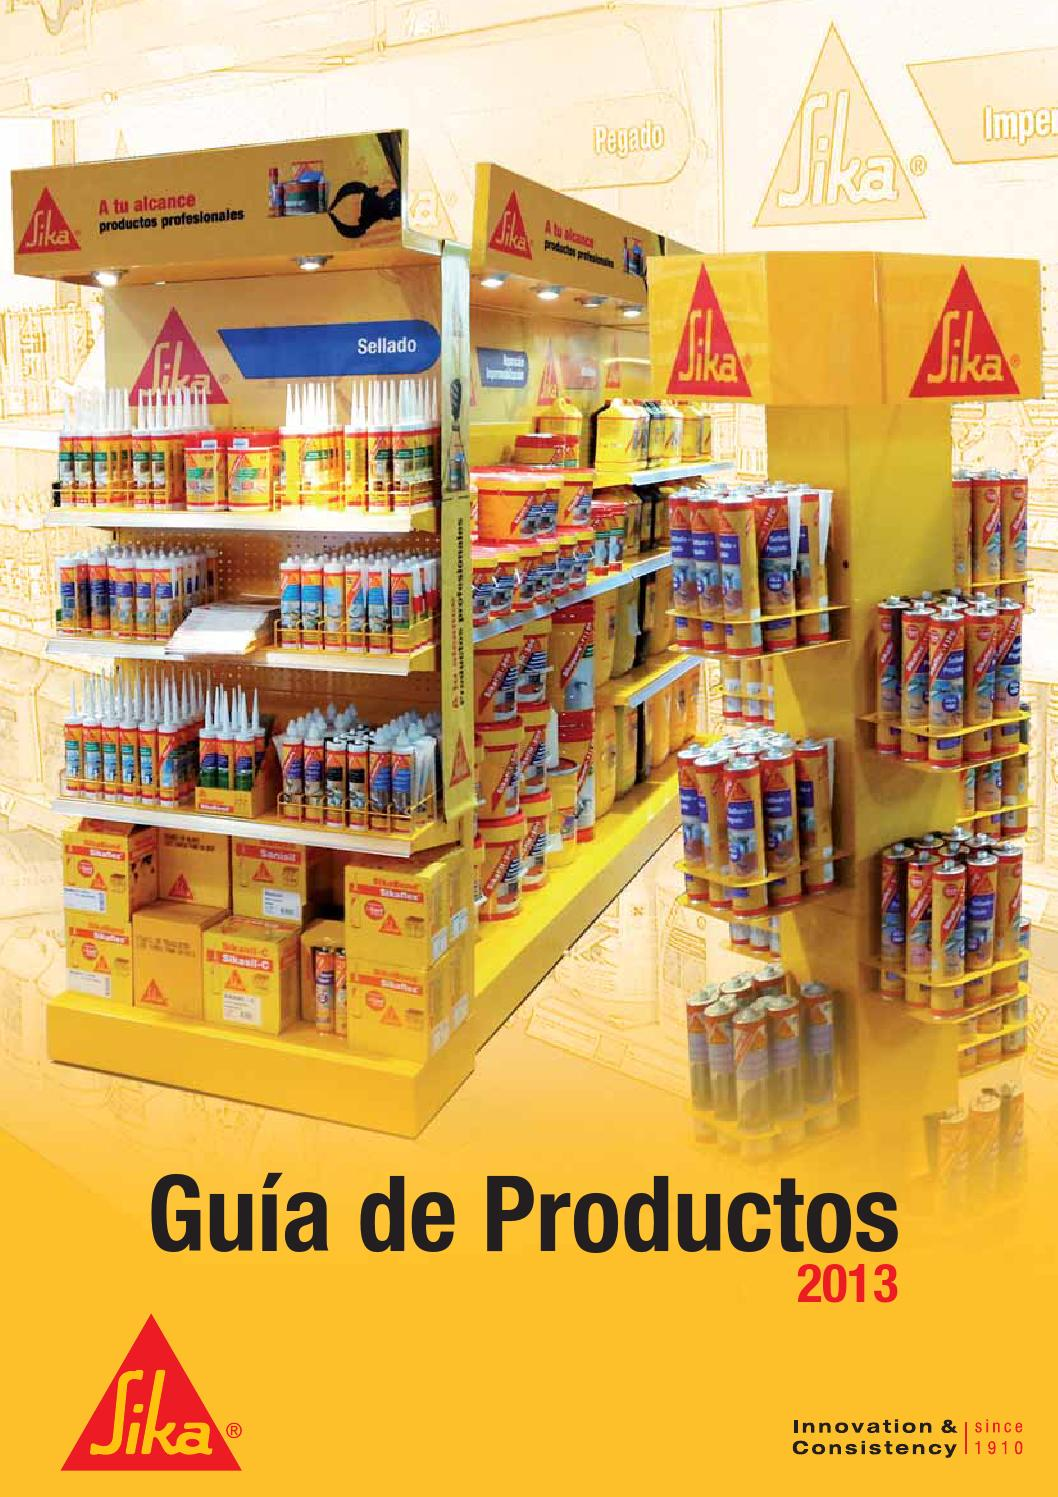 Guia de productos sika 2013 by ferreteria martinez issuu for Productos sika para piscinas